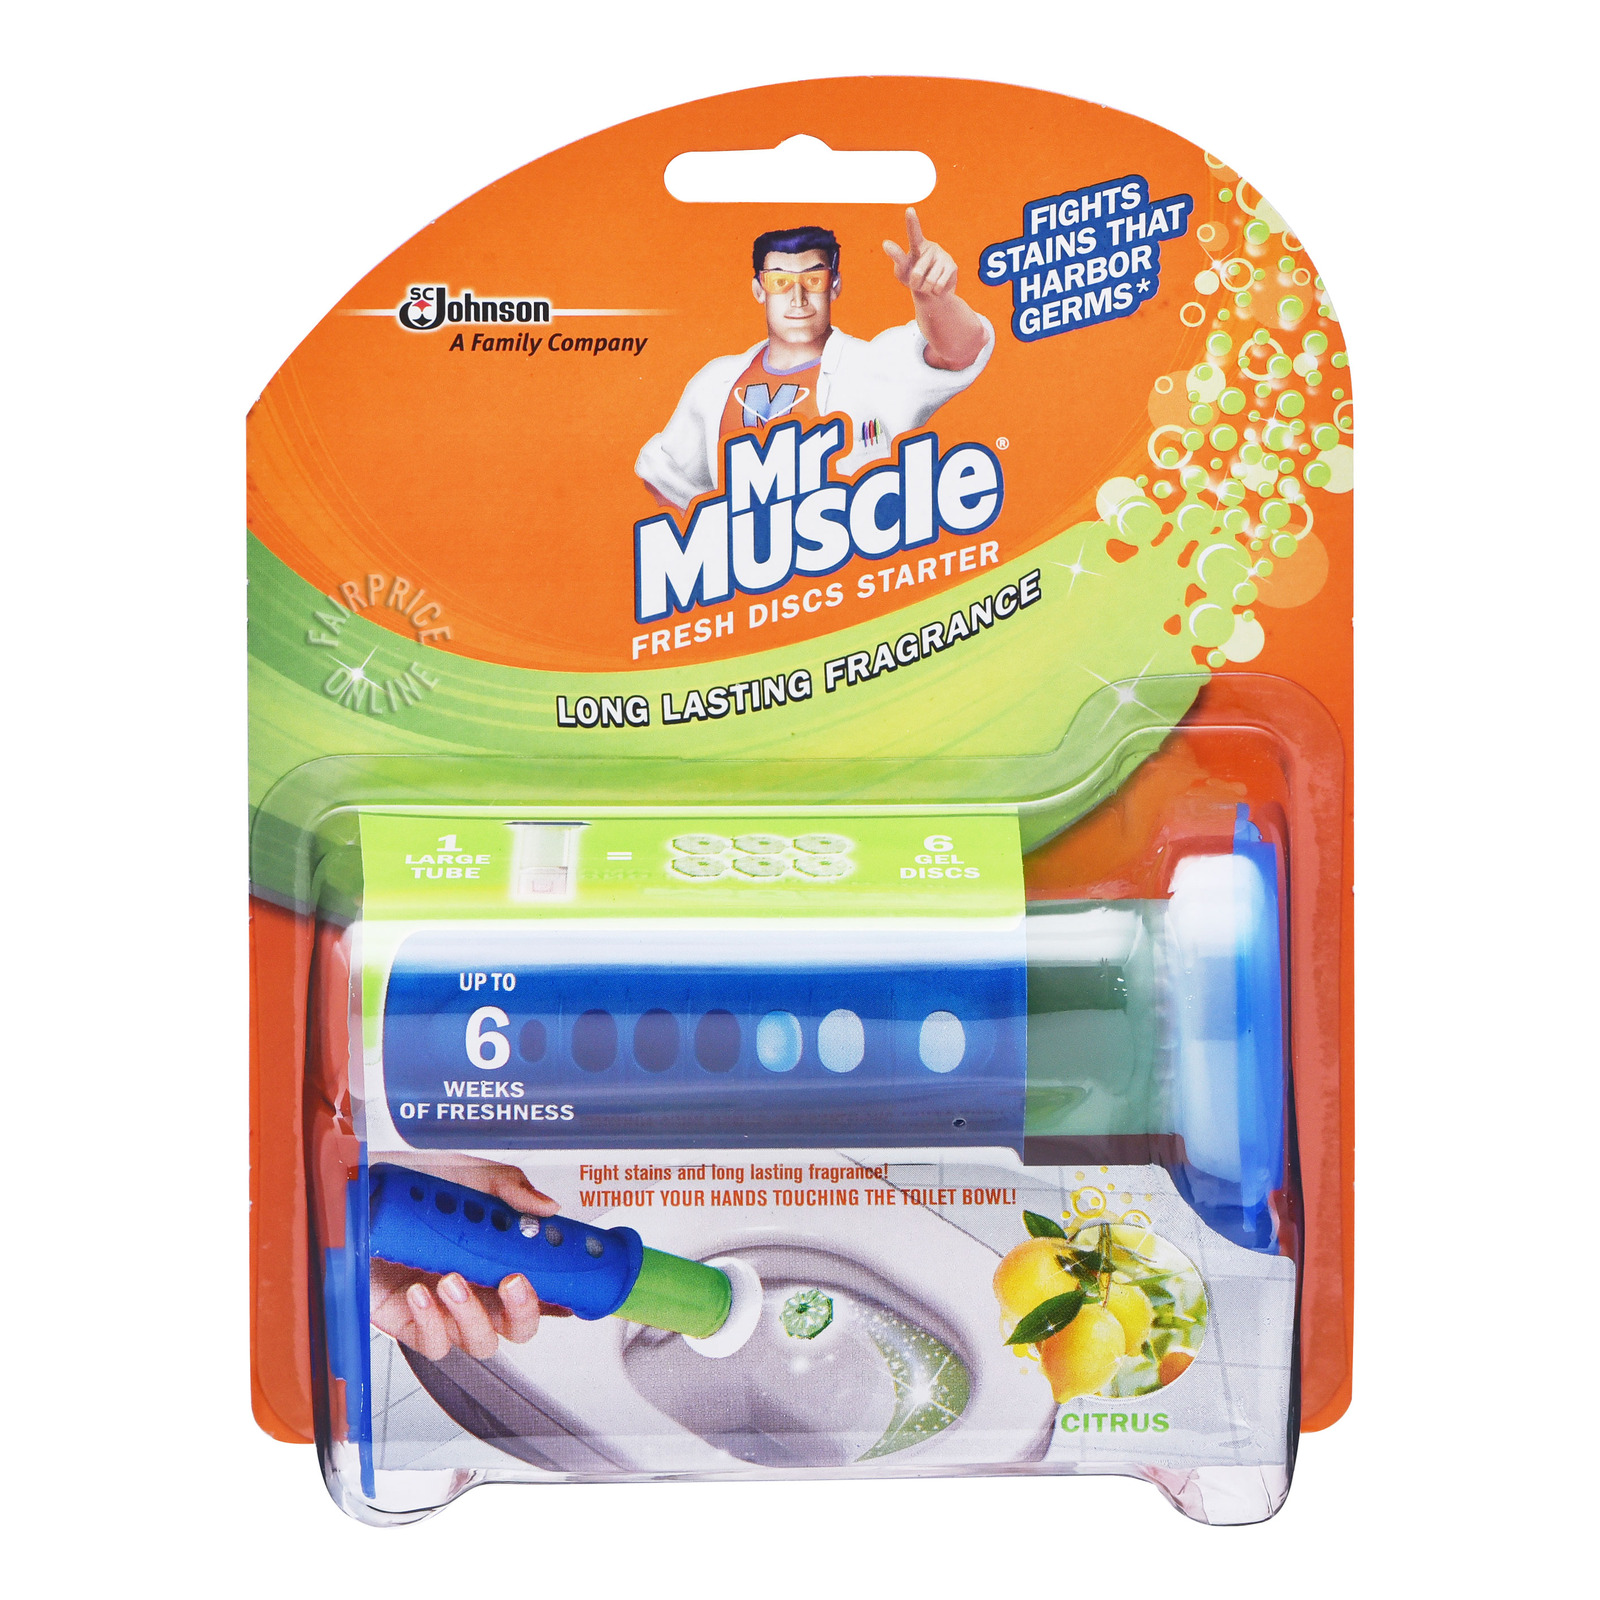 Mr Muscle Fresh Discs Starter Kit - Citrus